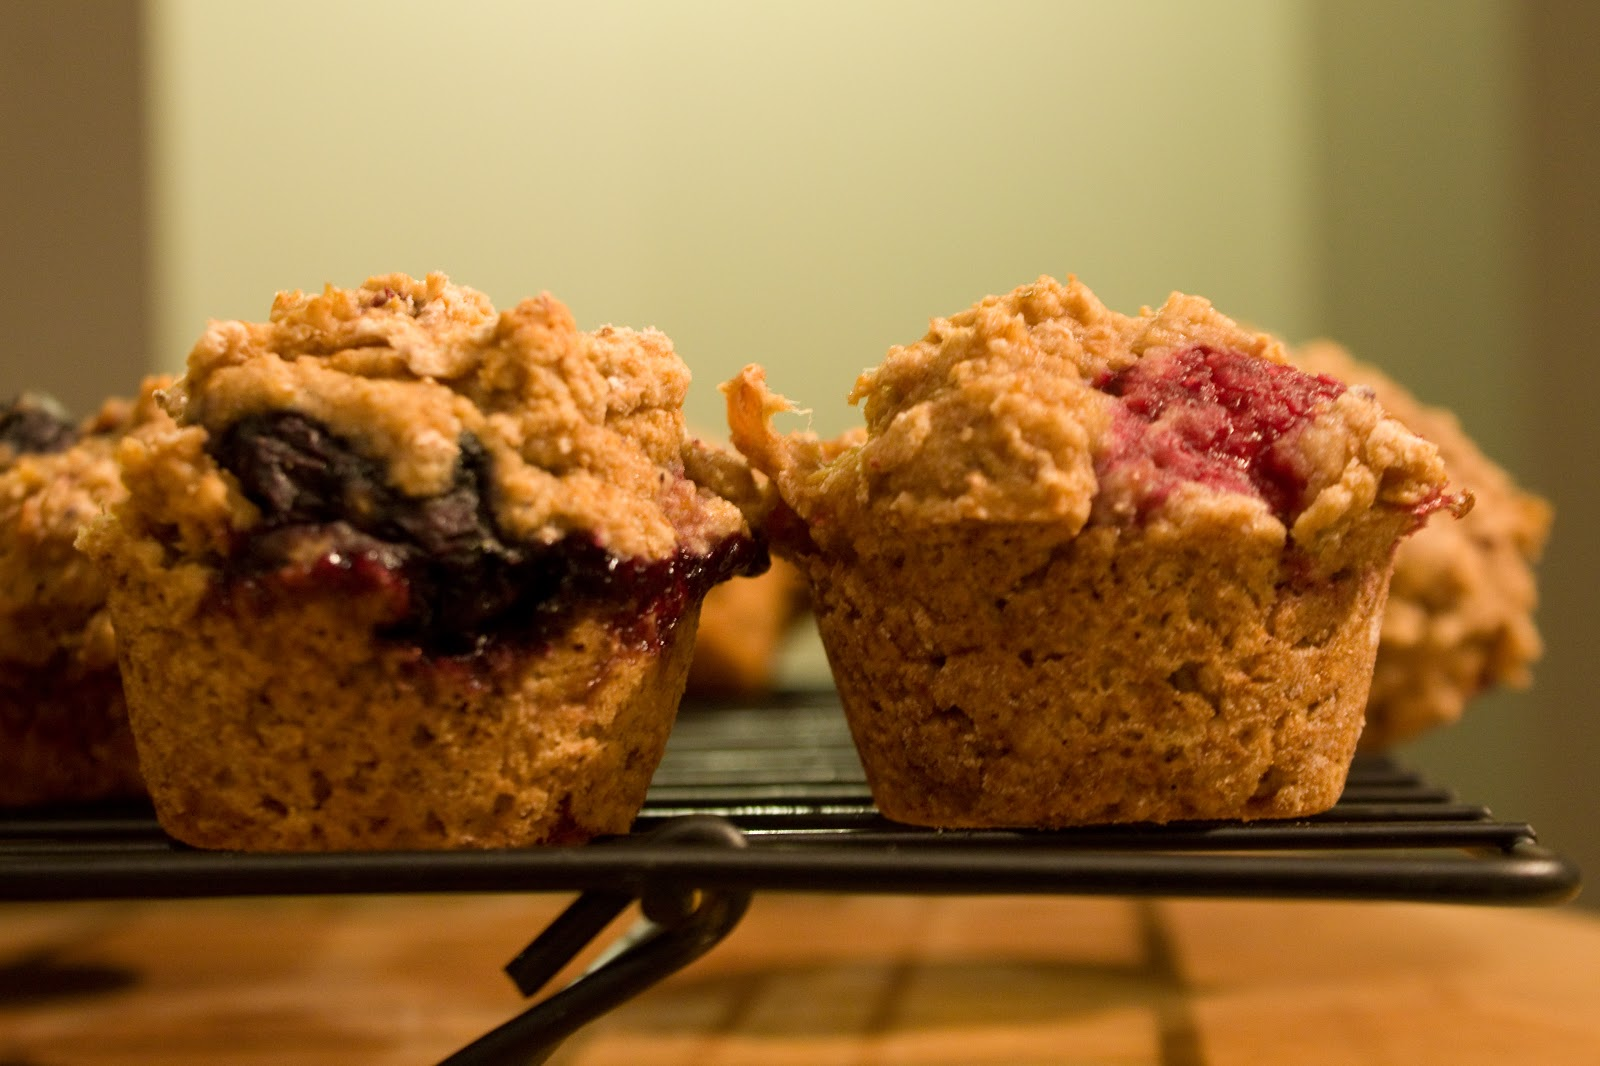 Little Piglet: Mixed Berry Whole Wheat Muffins